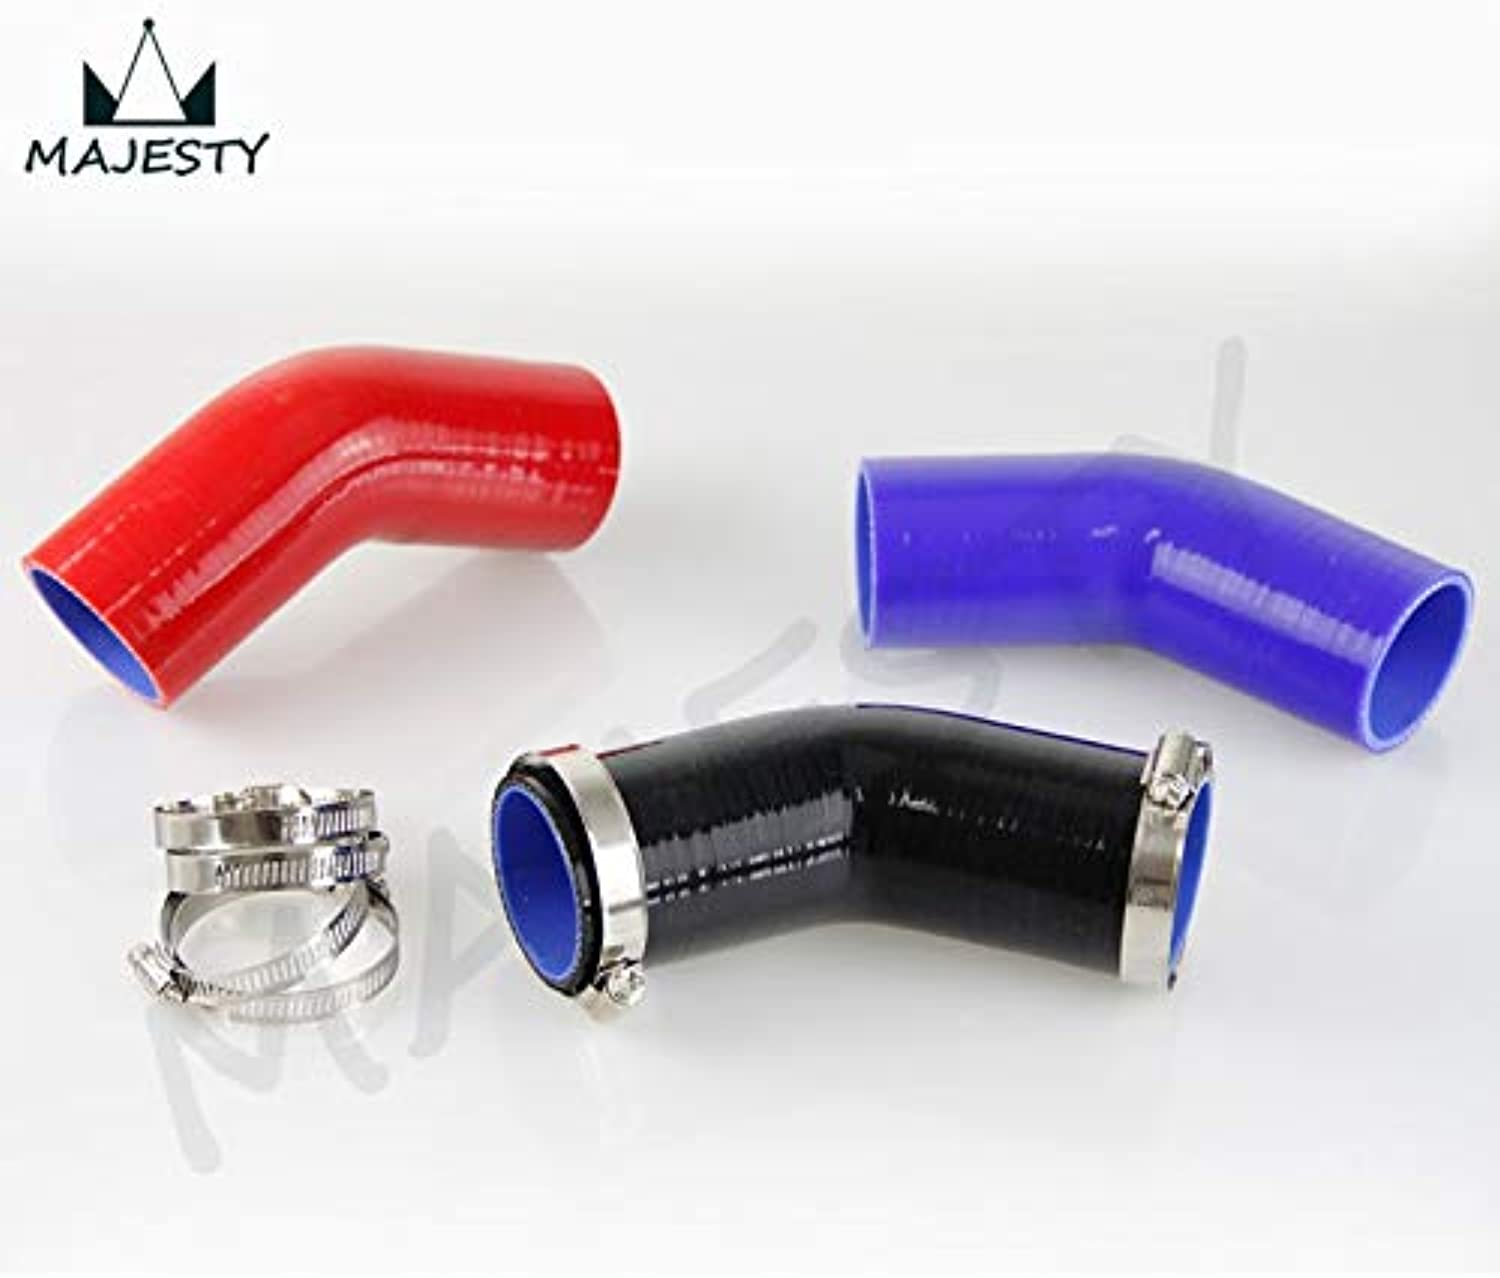 Fincos 45 Degree Racing Silicone Hose Elbow Coupler Intercooler Turbo Hose 57mm 2.25  inch+Clamps Black bluee red